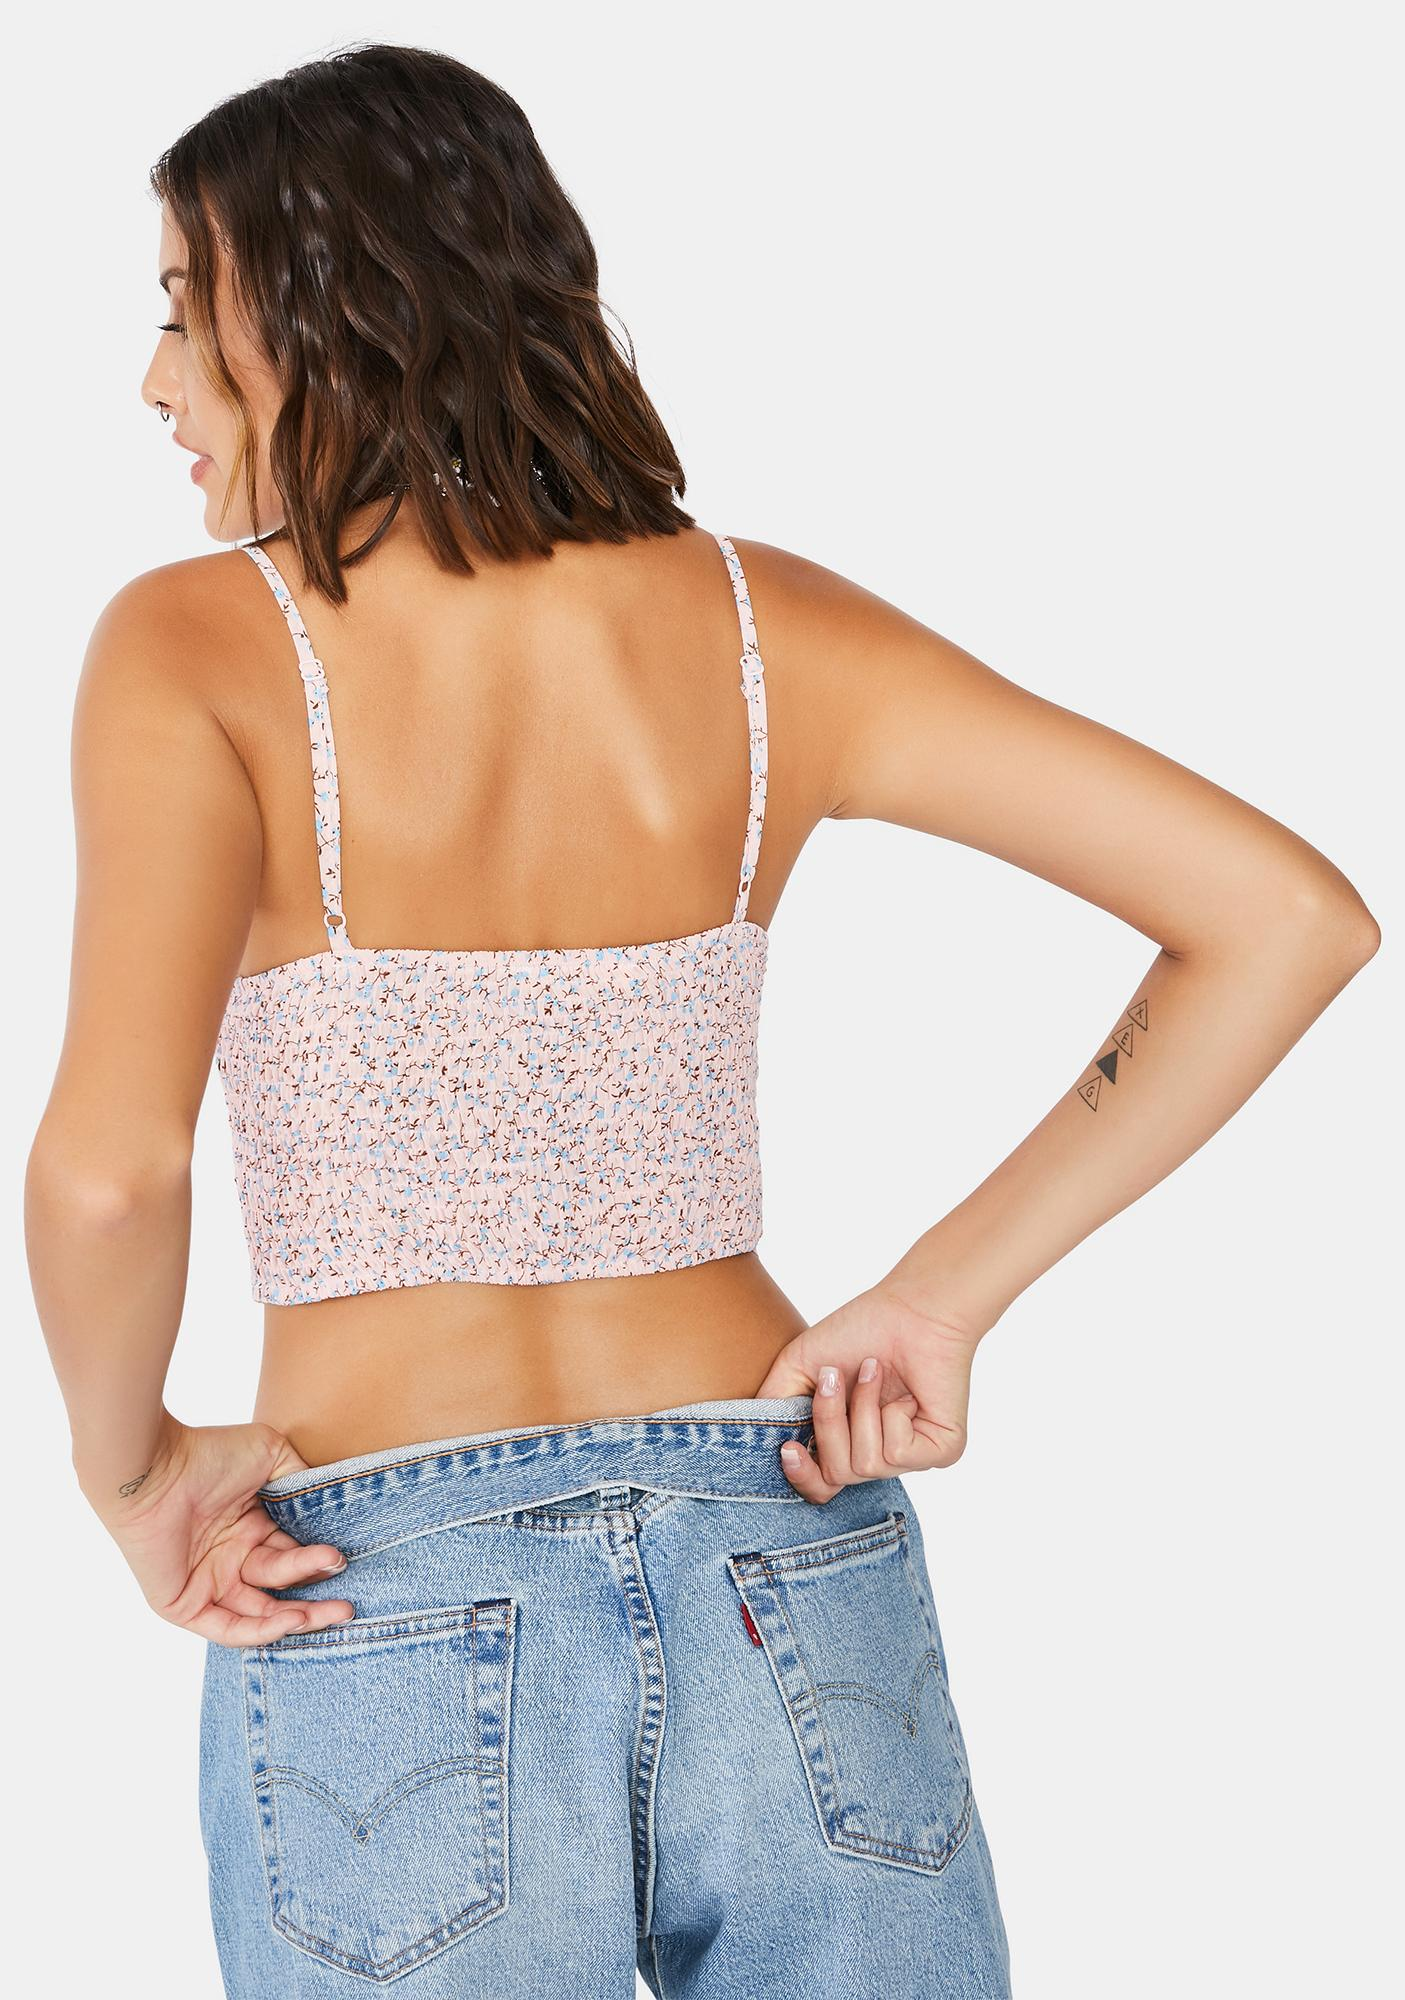 Kiss Of Life Cropped Tank